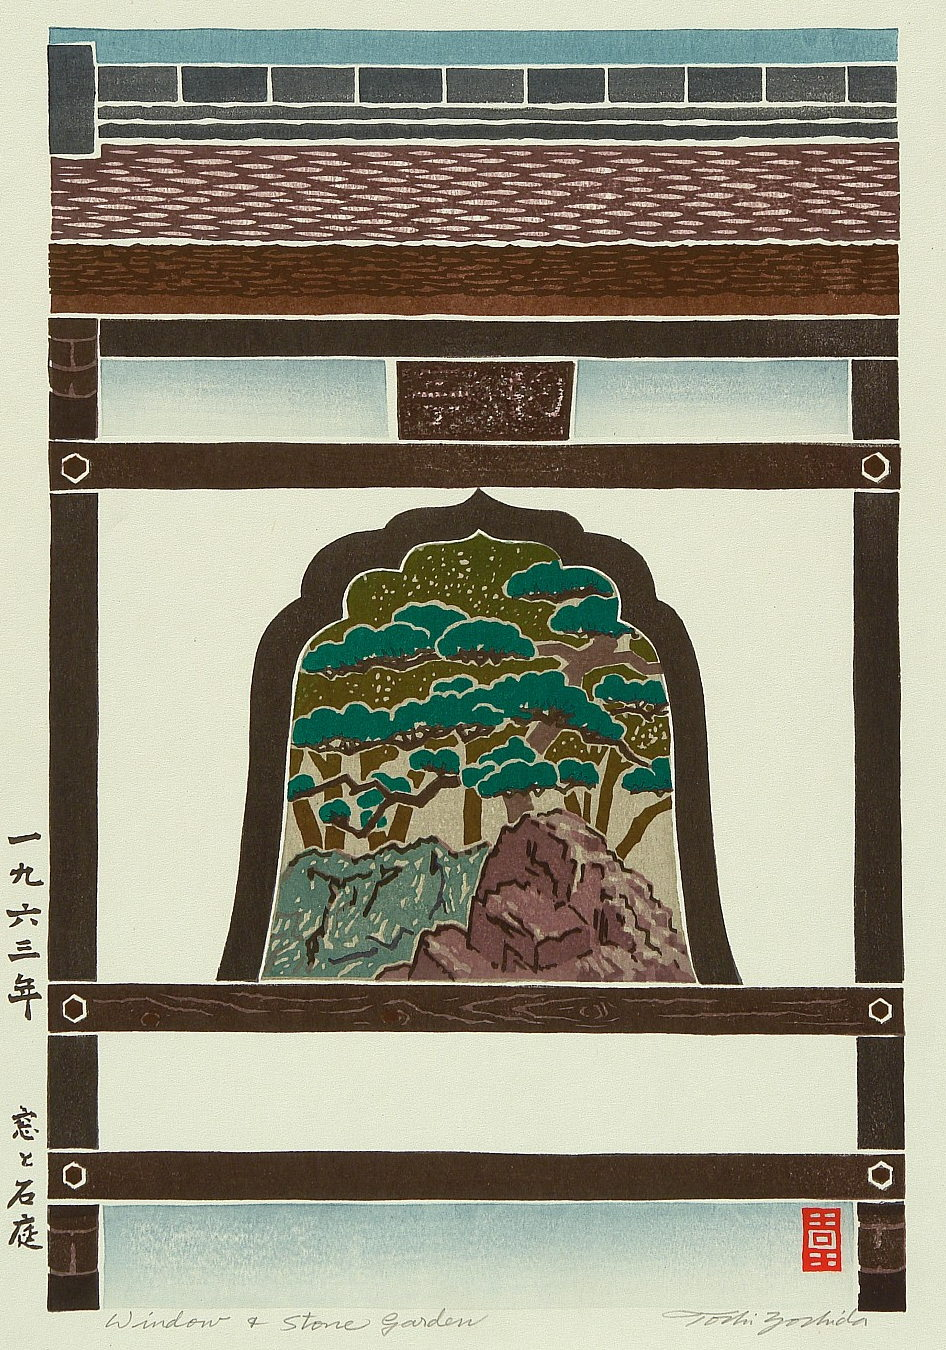 "Tōshi Yoshida ""Window and Stone Garden"" 1963 main image"